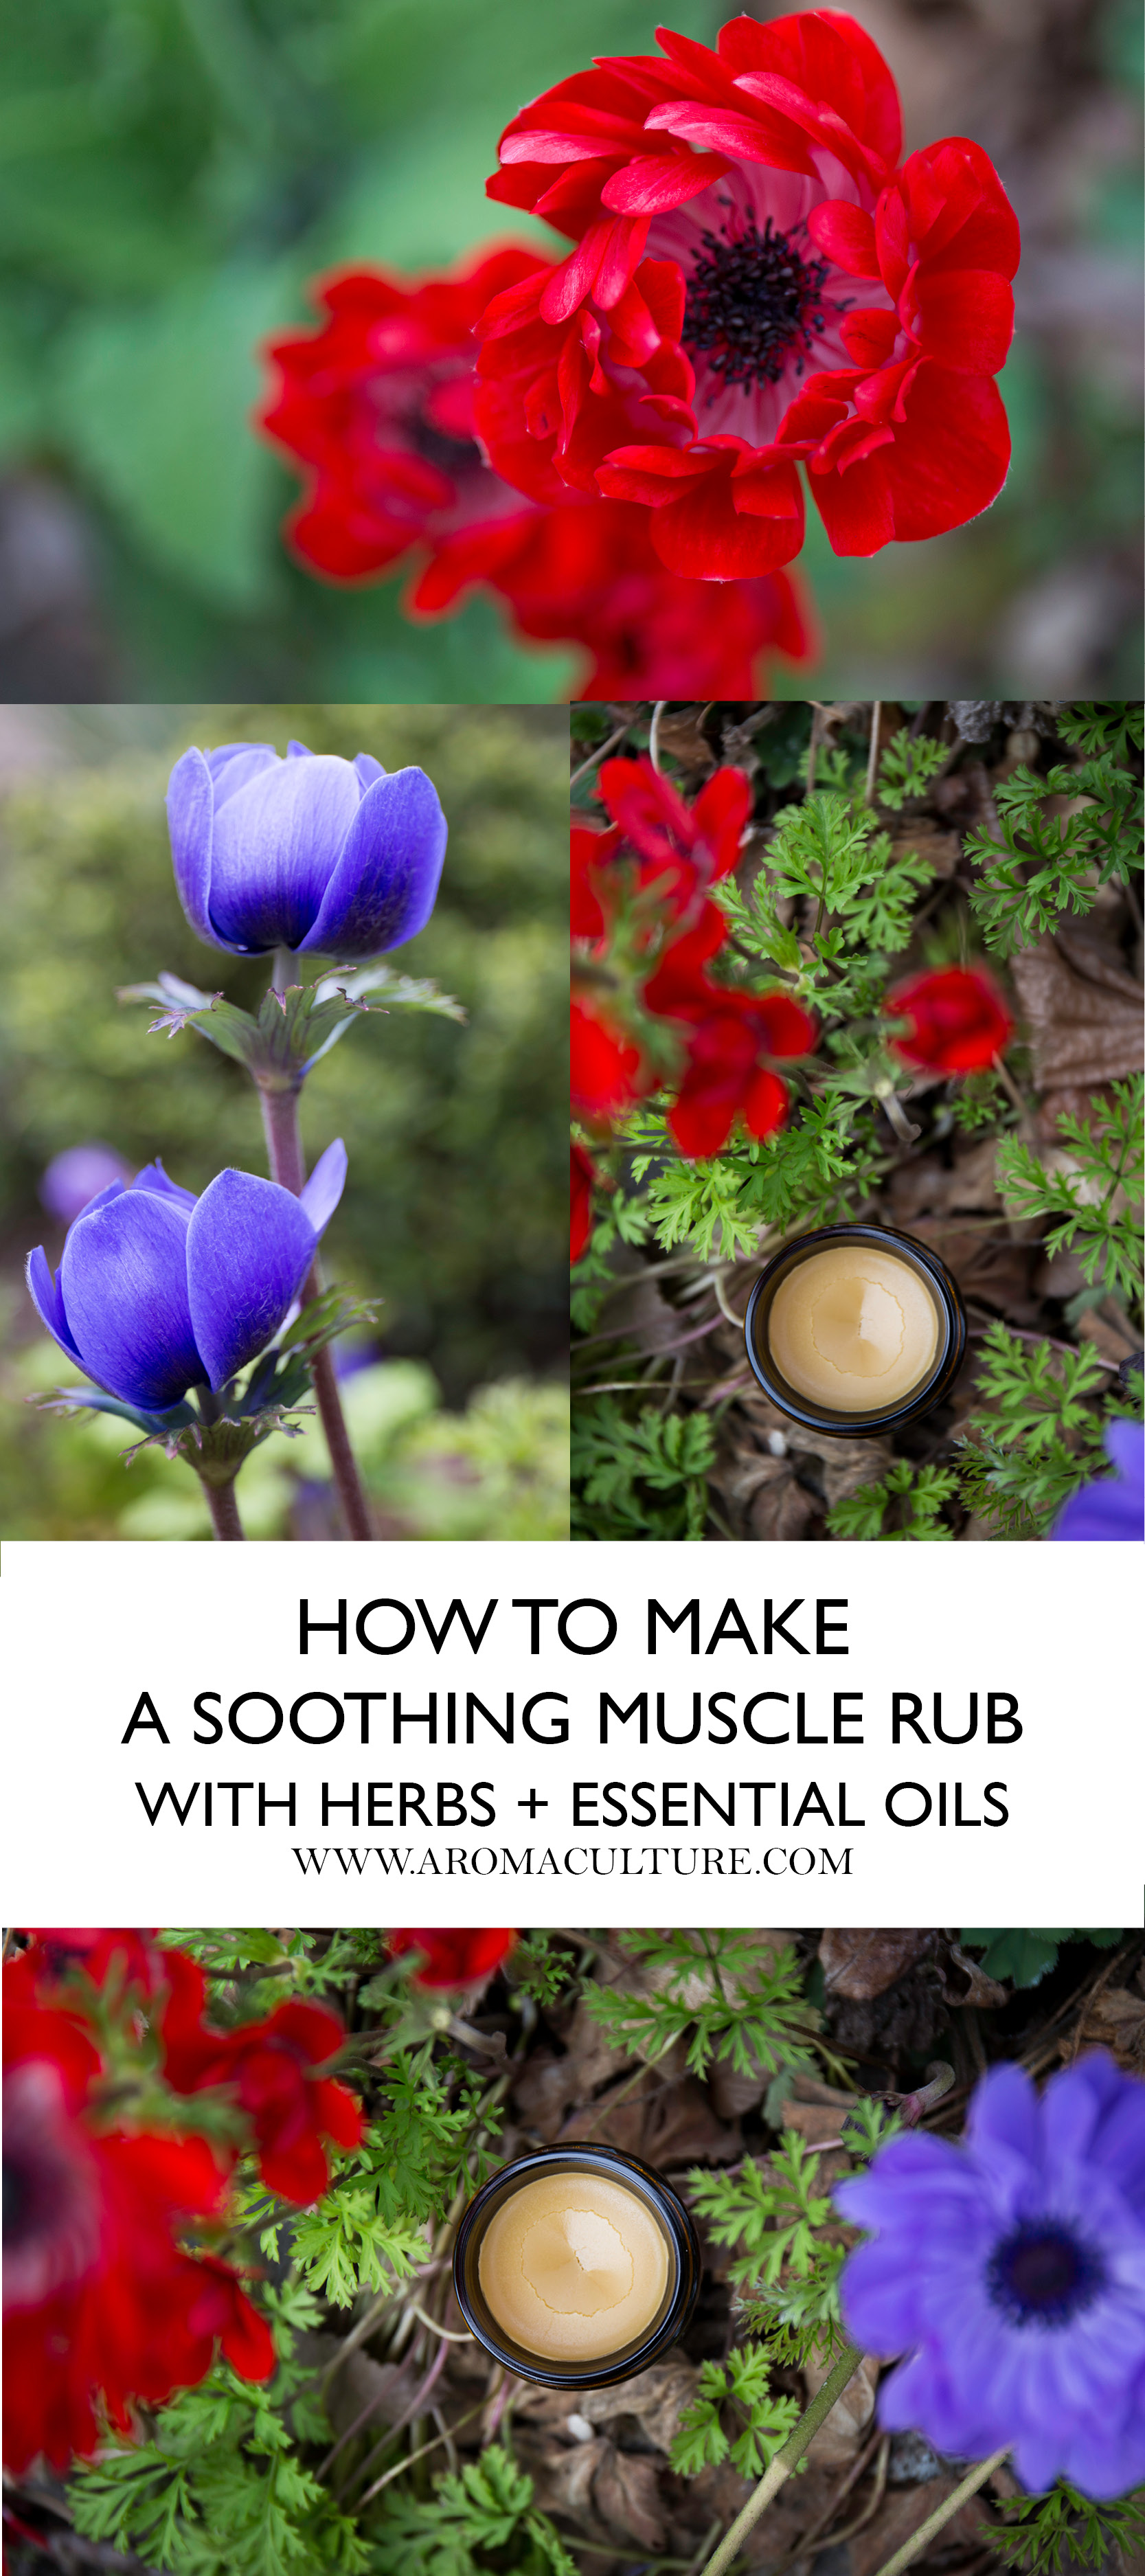 how to make a soothing muscle rub ointment for postworkout with herbs and essential oils aromaculture.jpg